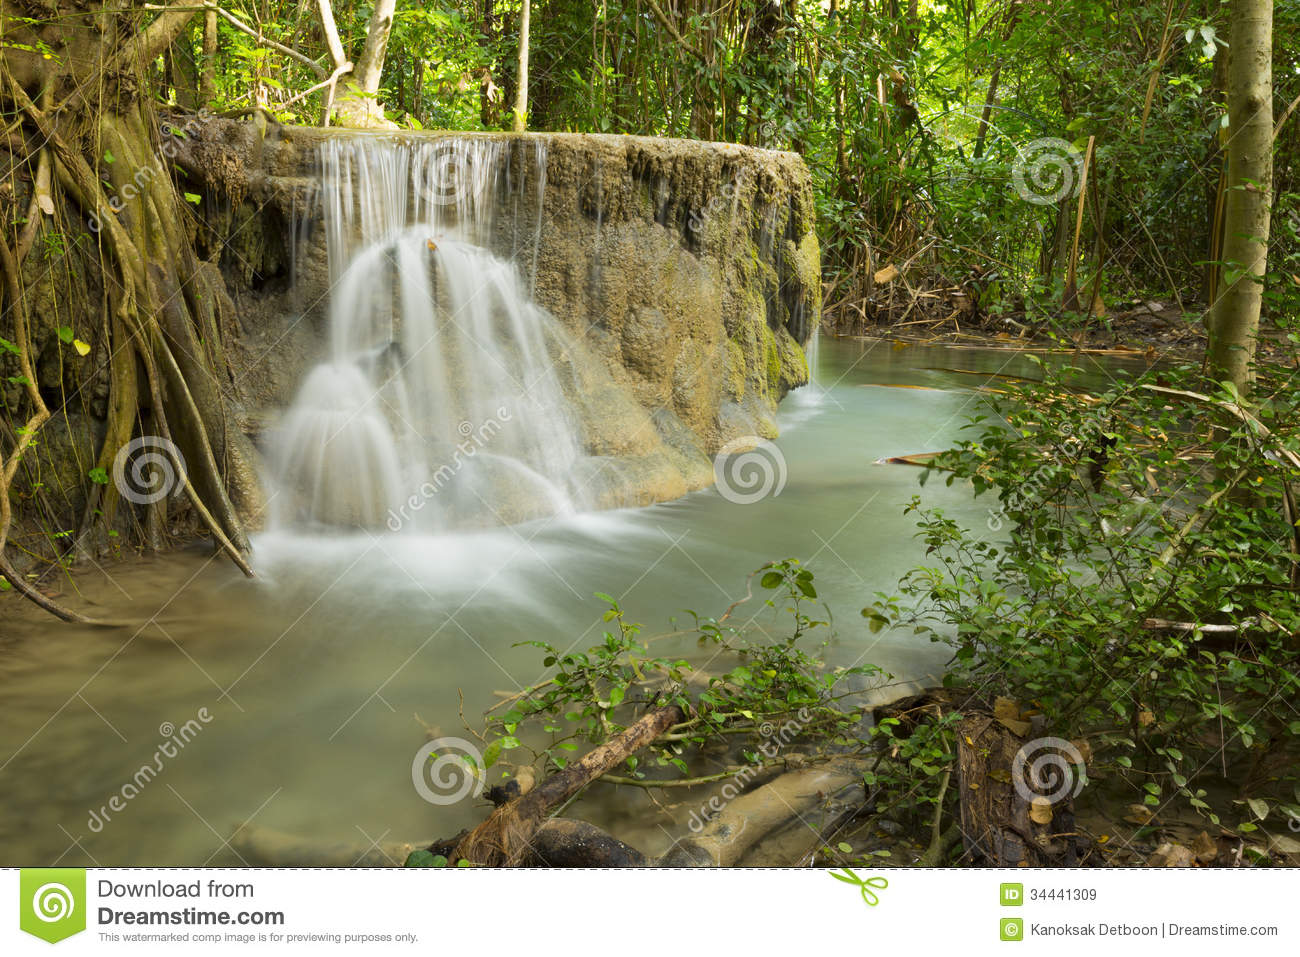 Beautiful waterfall in thailand s erawan waterfalls national park - Waterfall Beautiful Scenery In The Tropical Forest